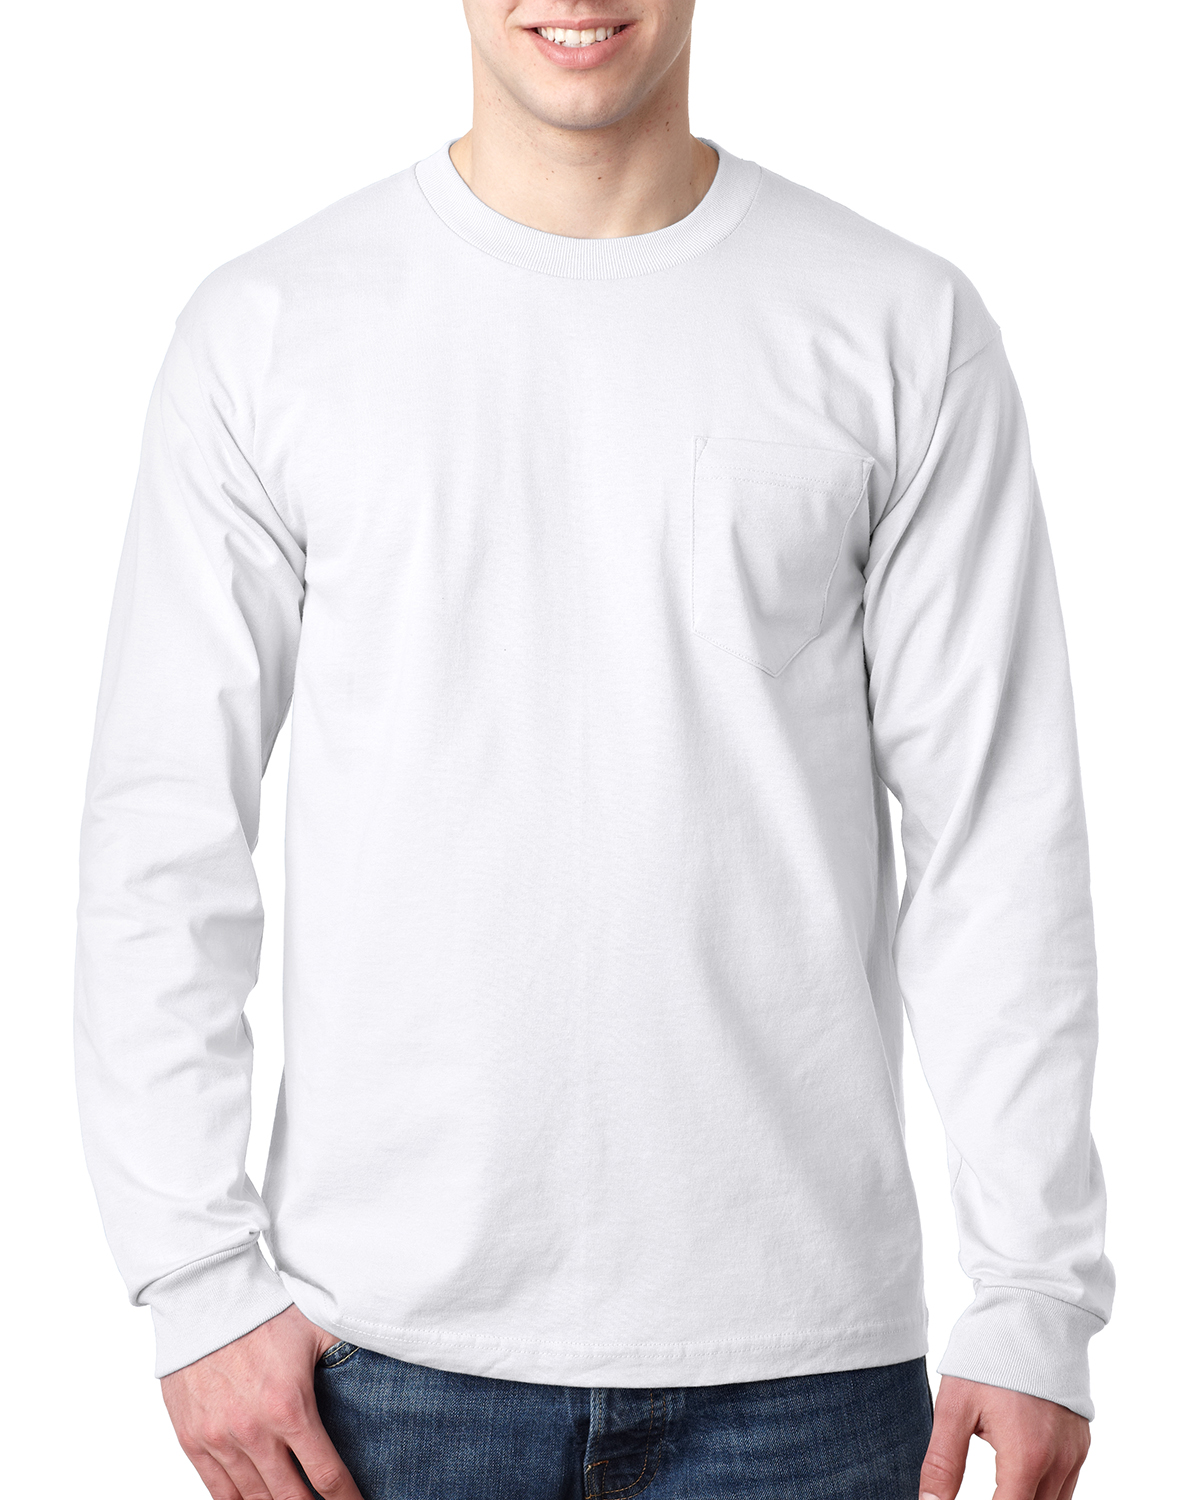 1026964b8 Bayside BA8100 Adult 6.1 oz., 100% Cotton Long Sleeve Pocket T-Shirt ...